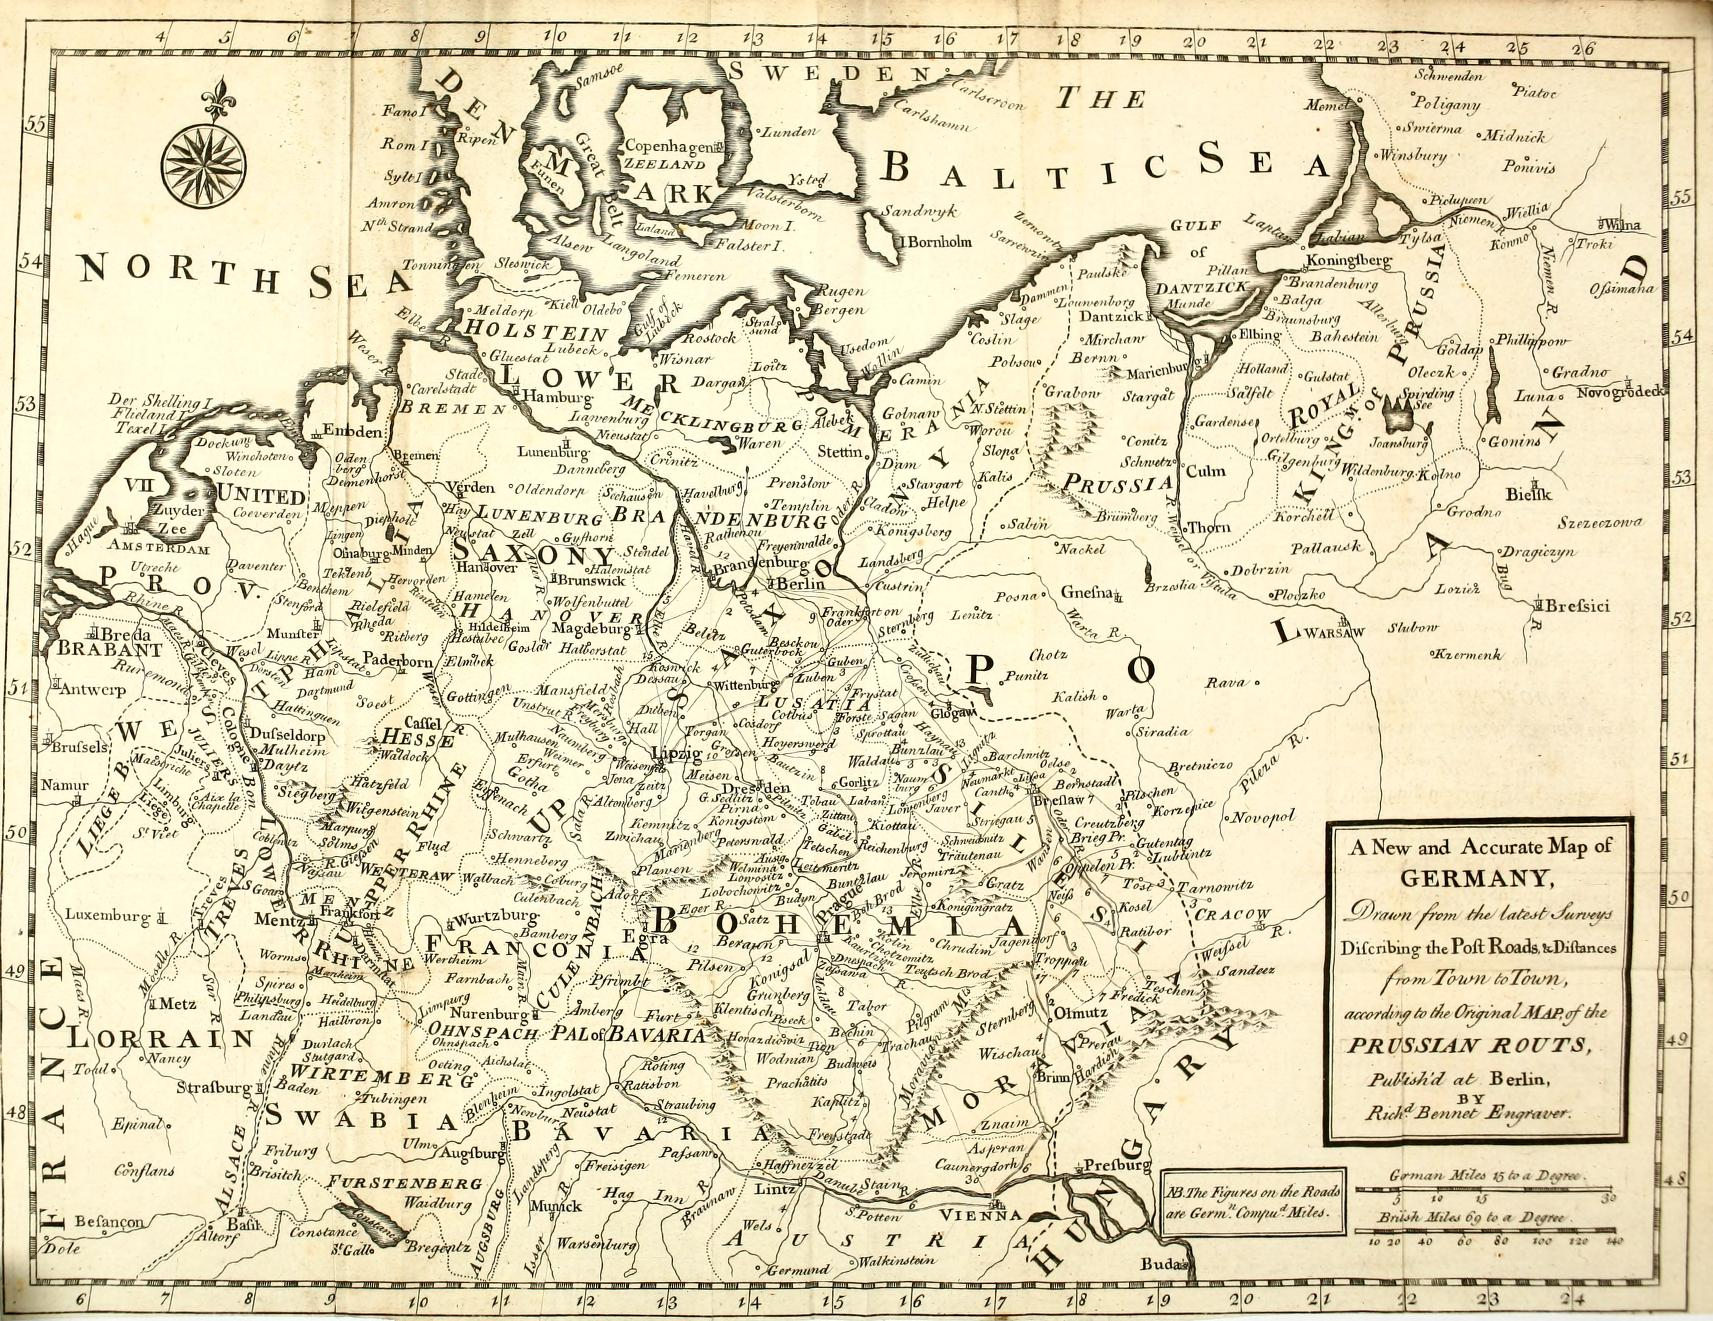 Map Of Germany Jpg.File Map Of Germany Published 1763 Jpg Wikimedia Commons